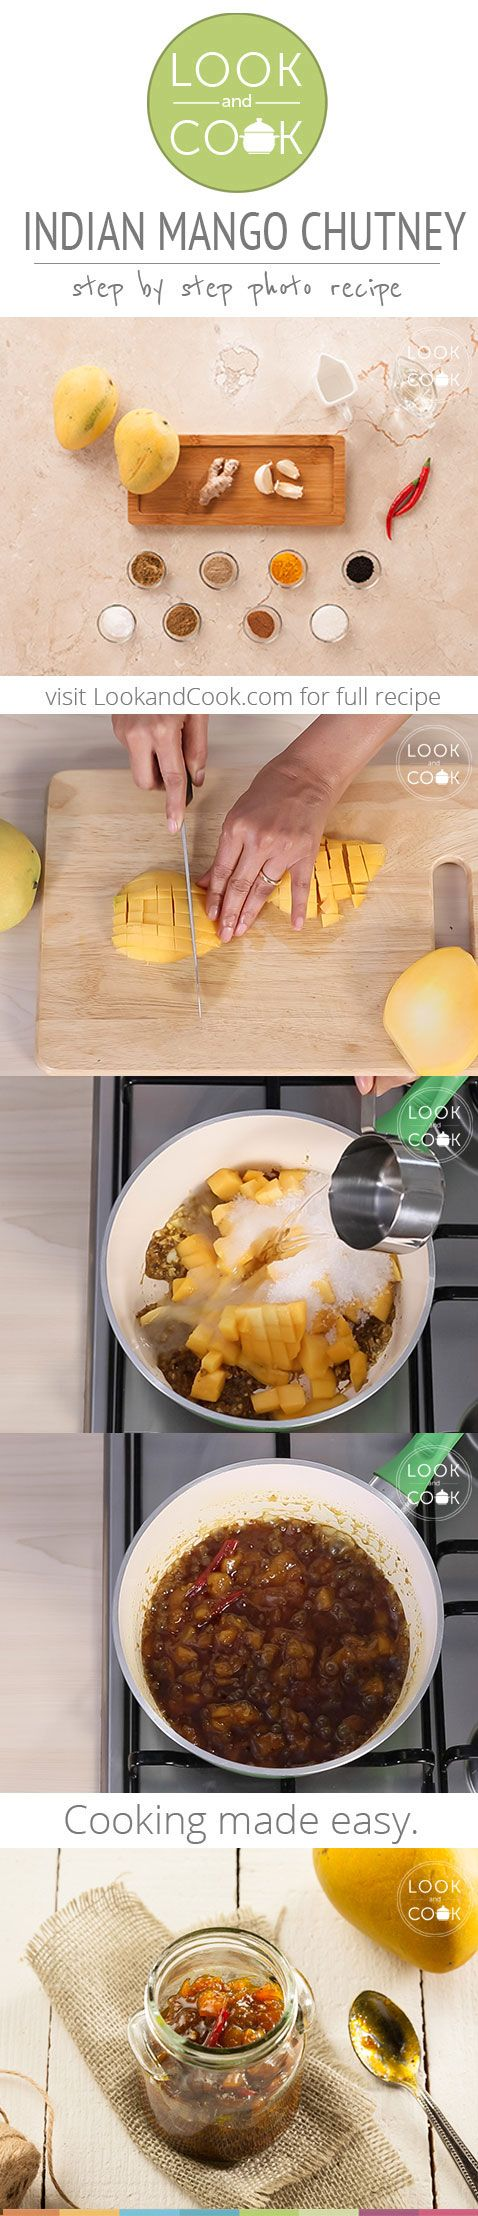 INDIAN MANGO CHUTNEY RECIPE (LC14297): Step by step guide to make this condiment with mango base & spices for the mango season.